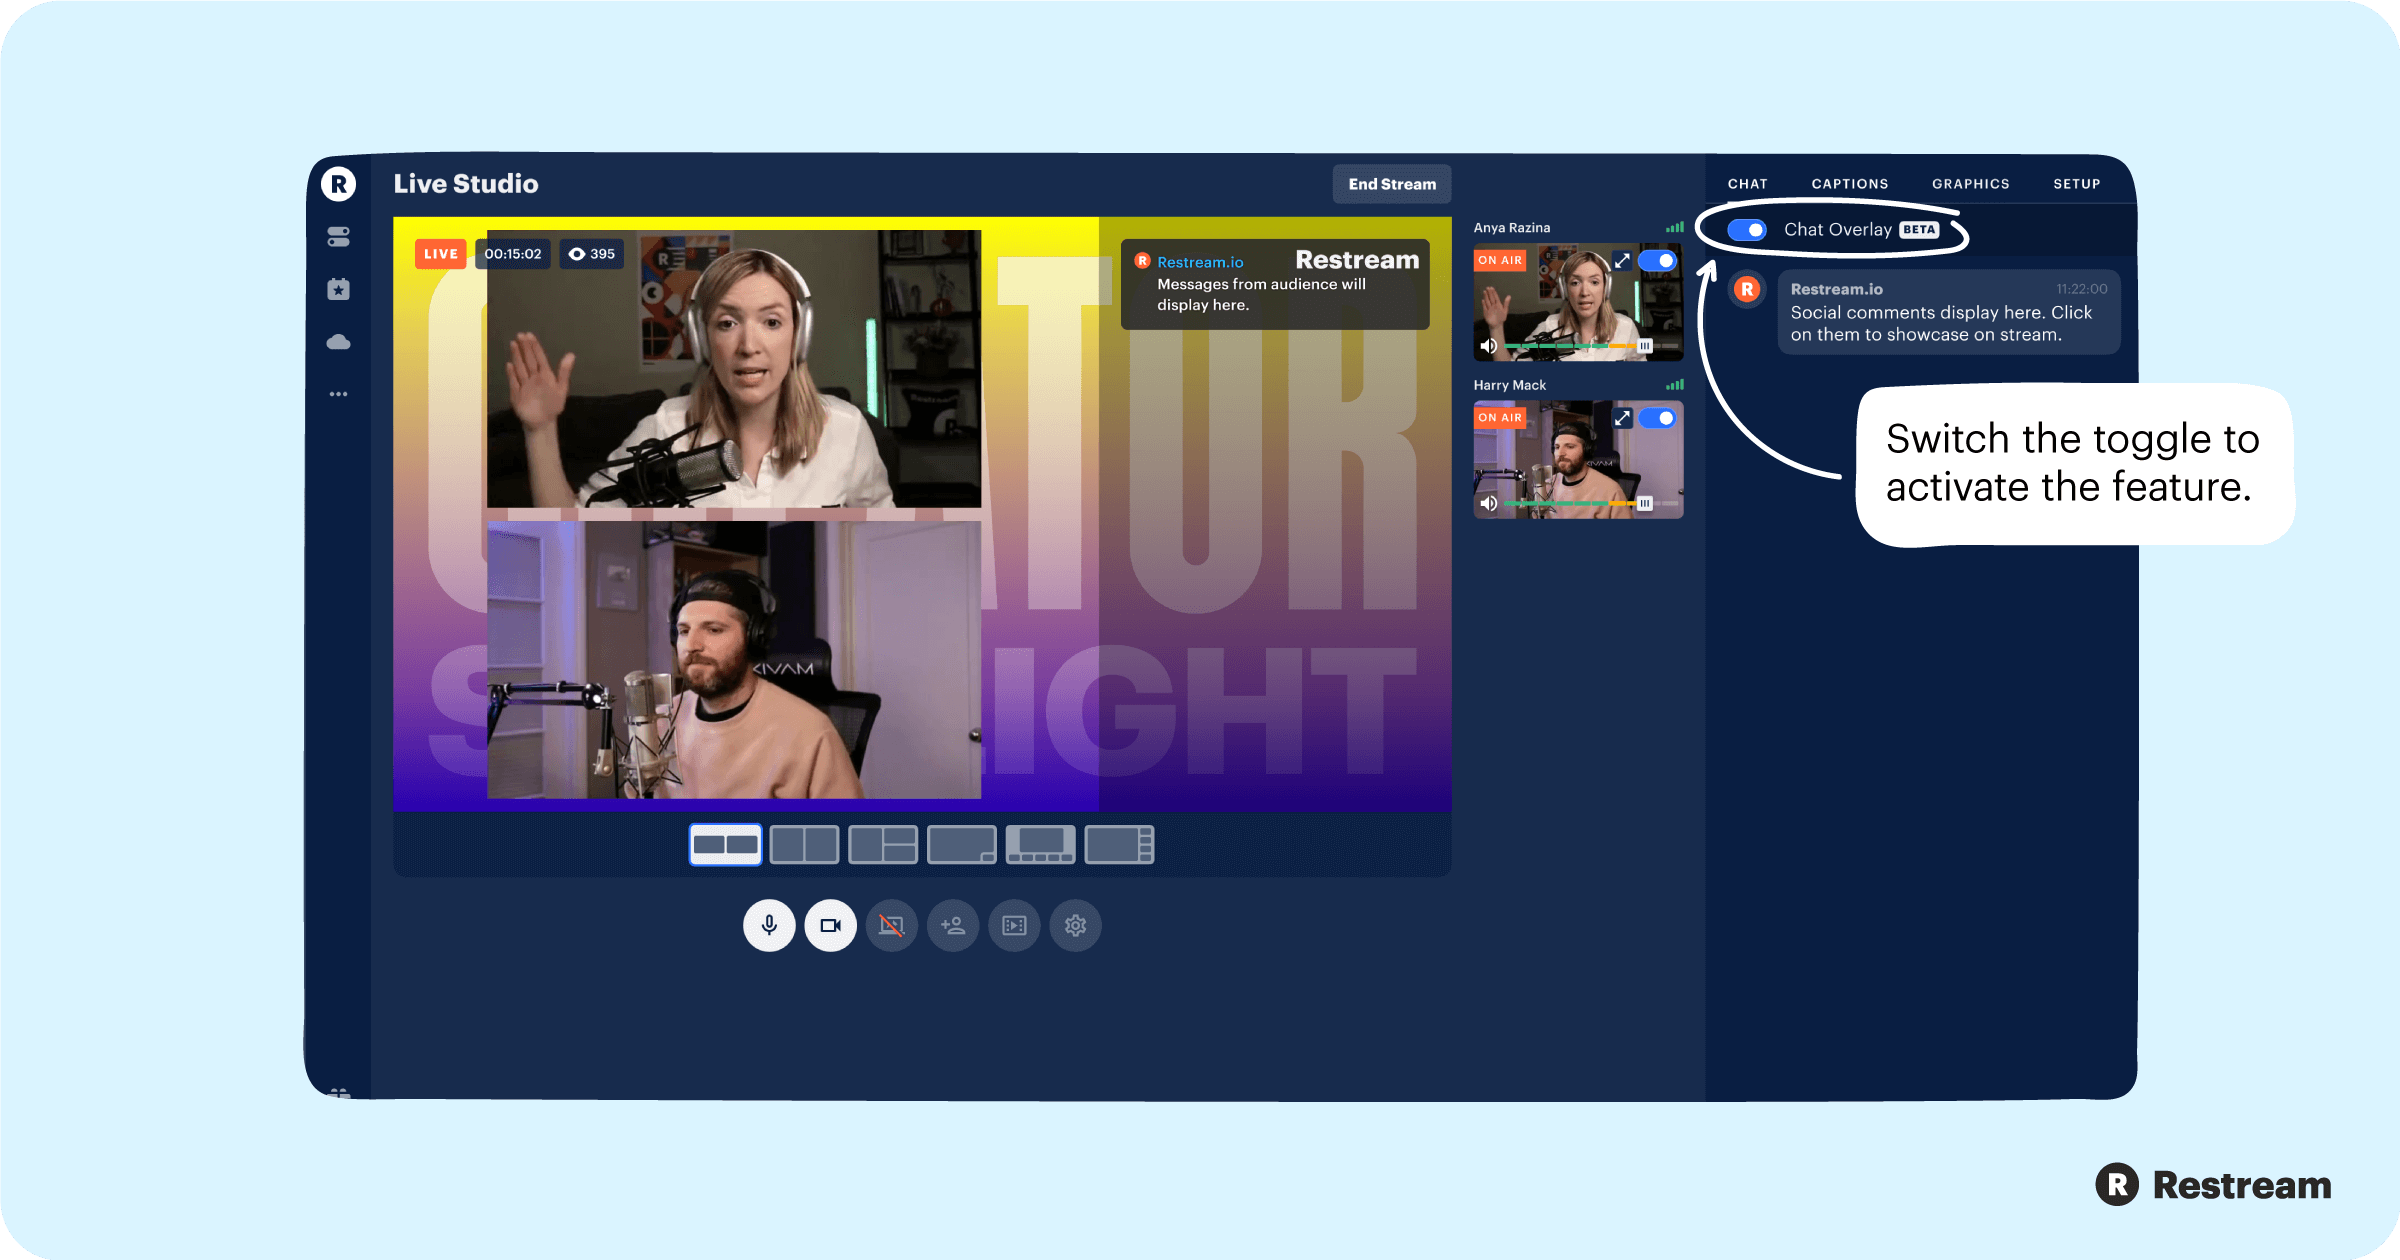 How to activate Chat Overlay in Restream Studio